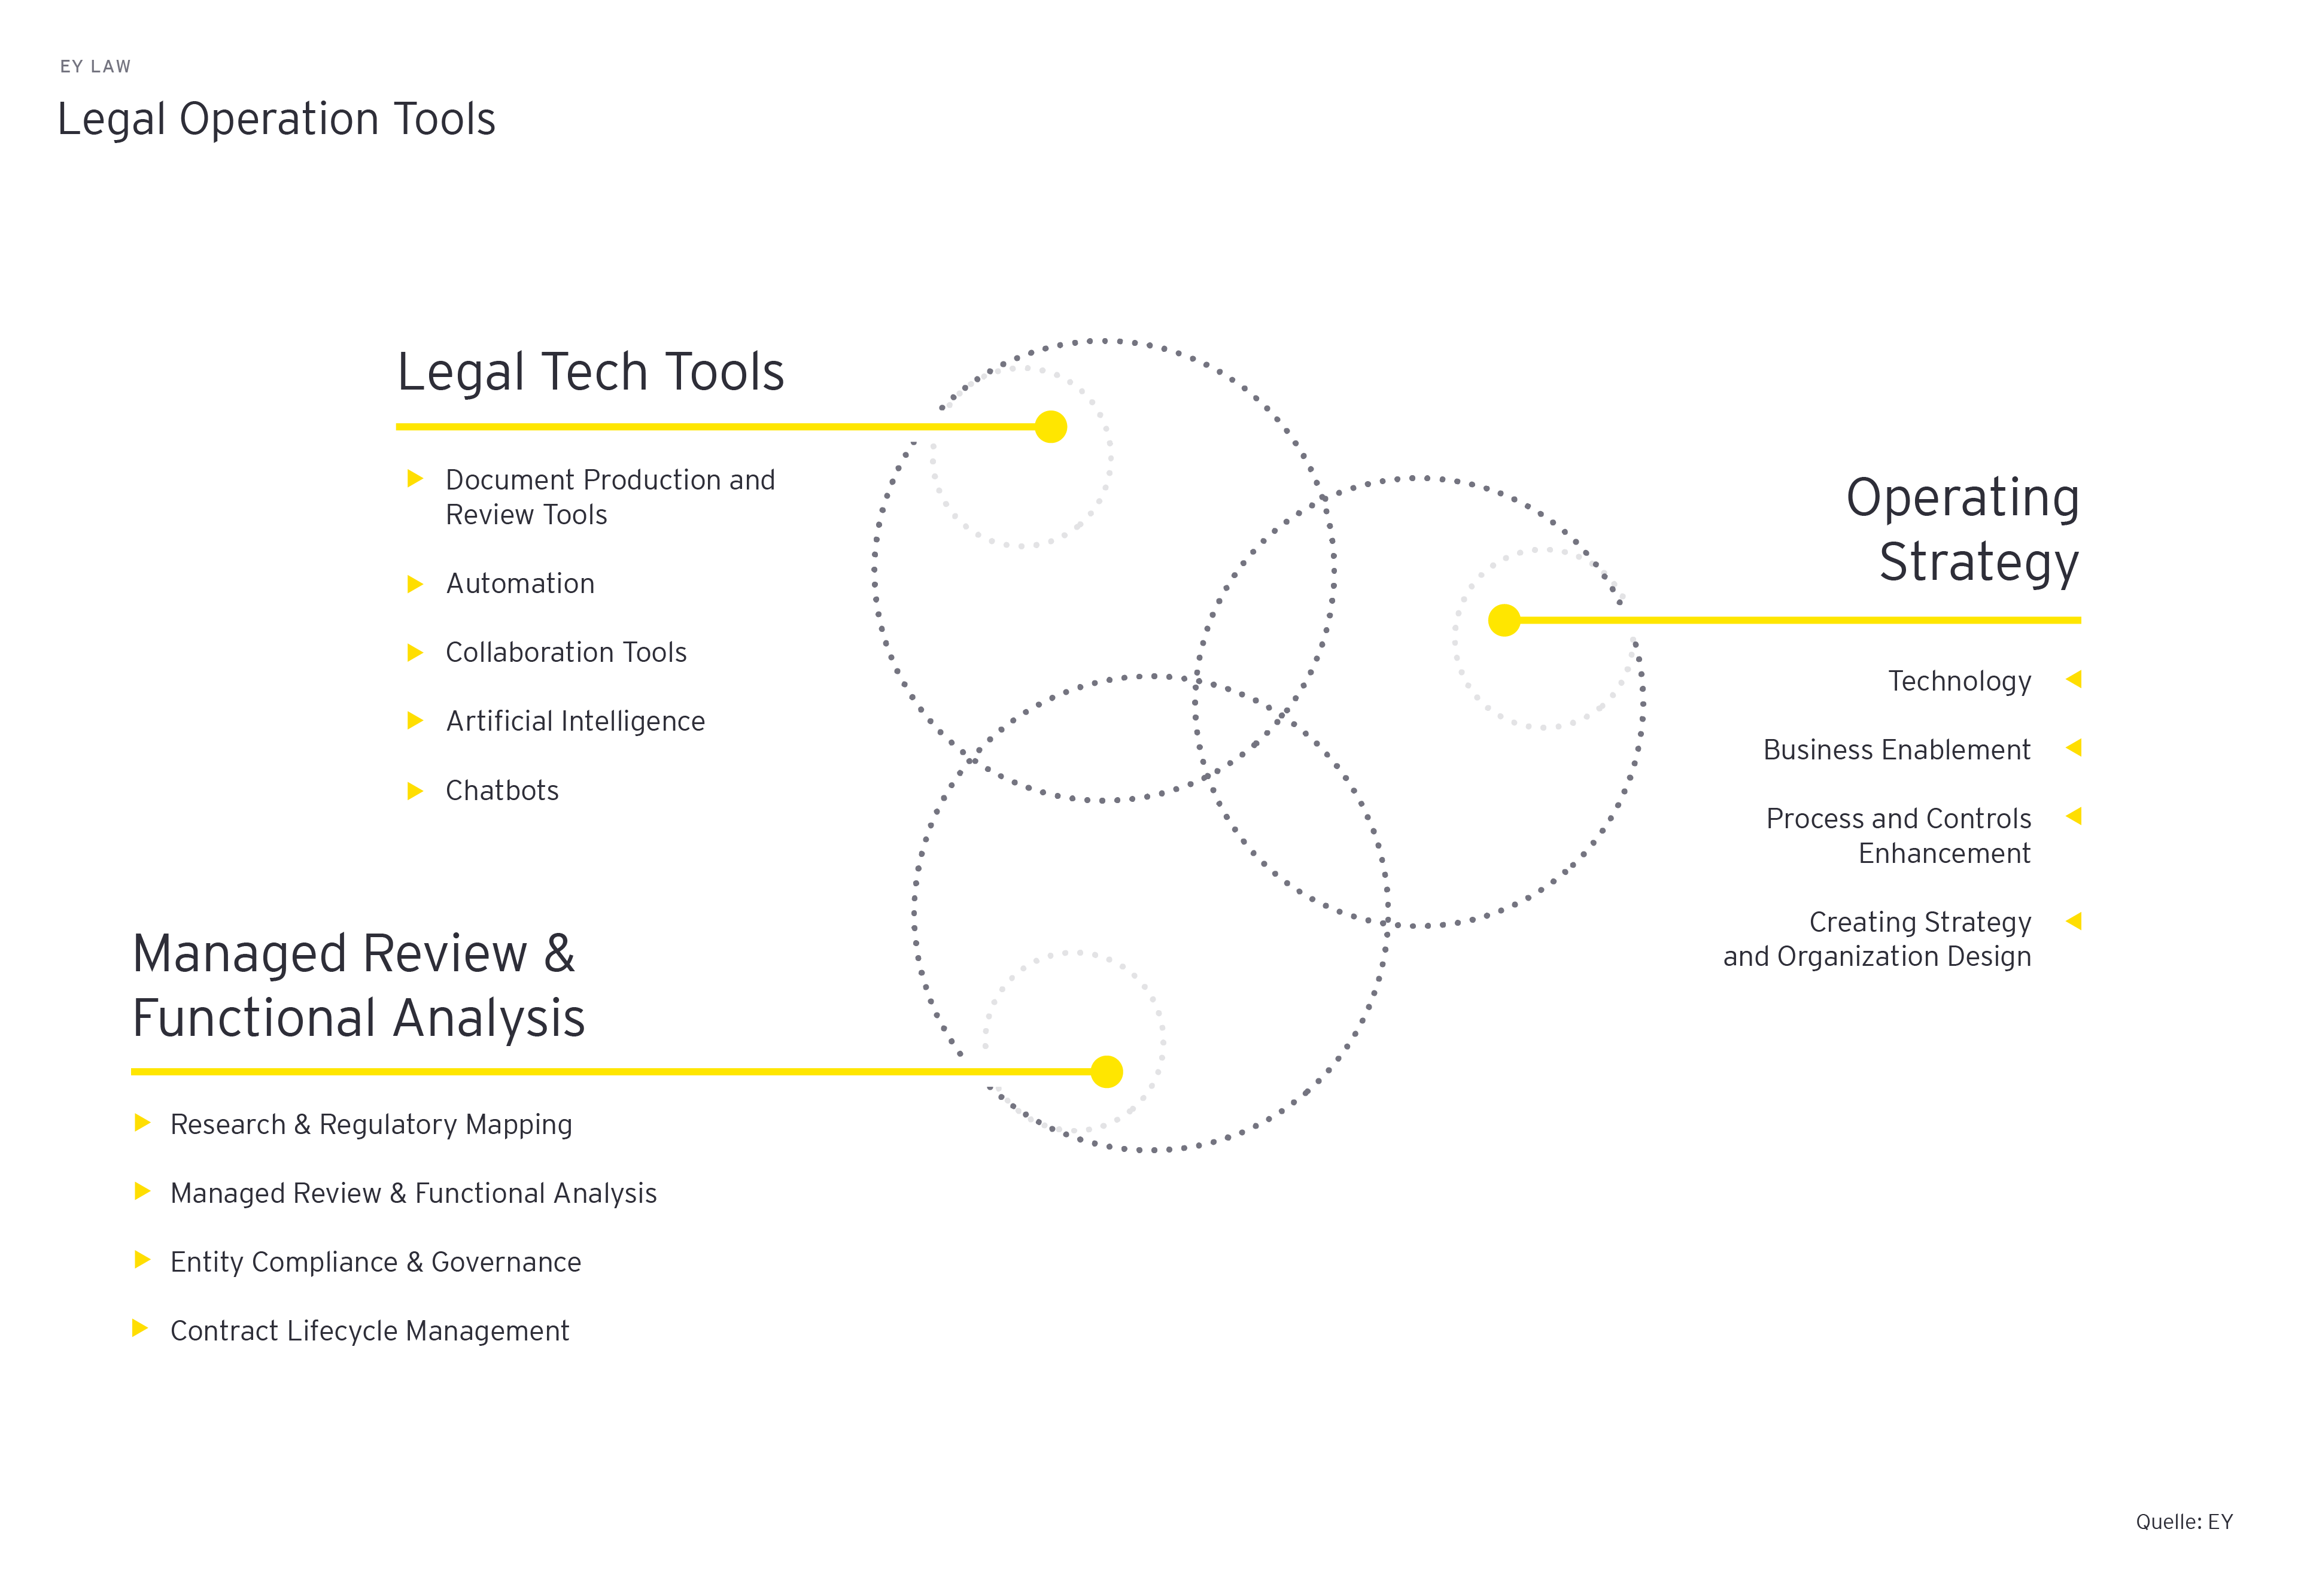 EY Law Legal Operation Tools